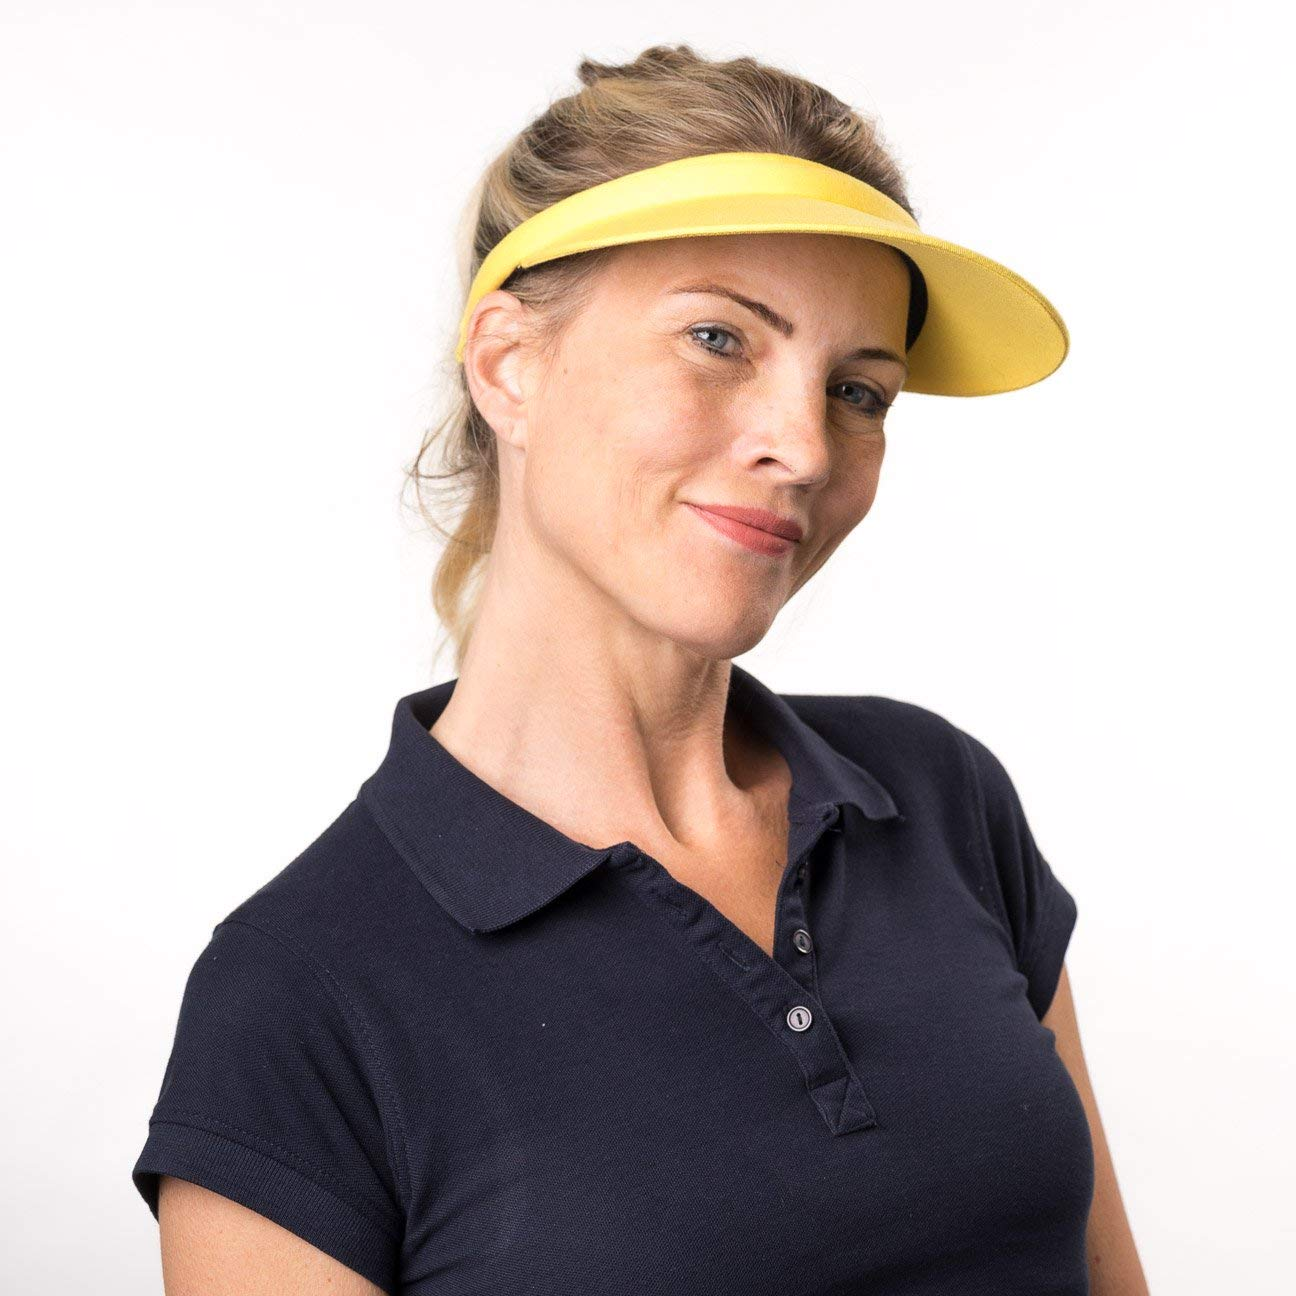 f1af3c8a172116 Seeberger Women's Visor - Grey - One Size: Amazon.co.uk: Clothing